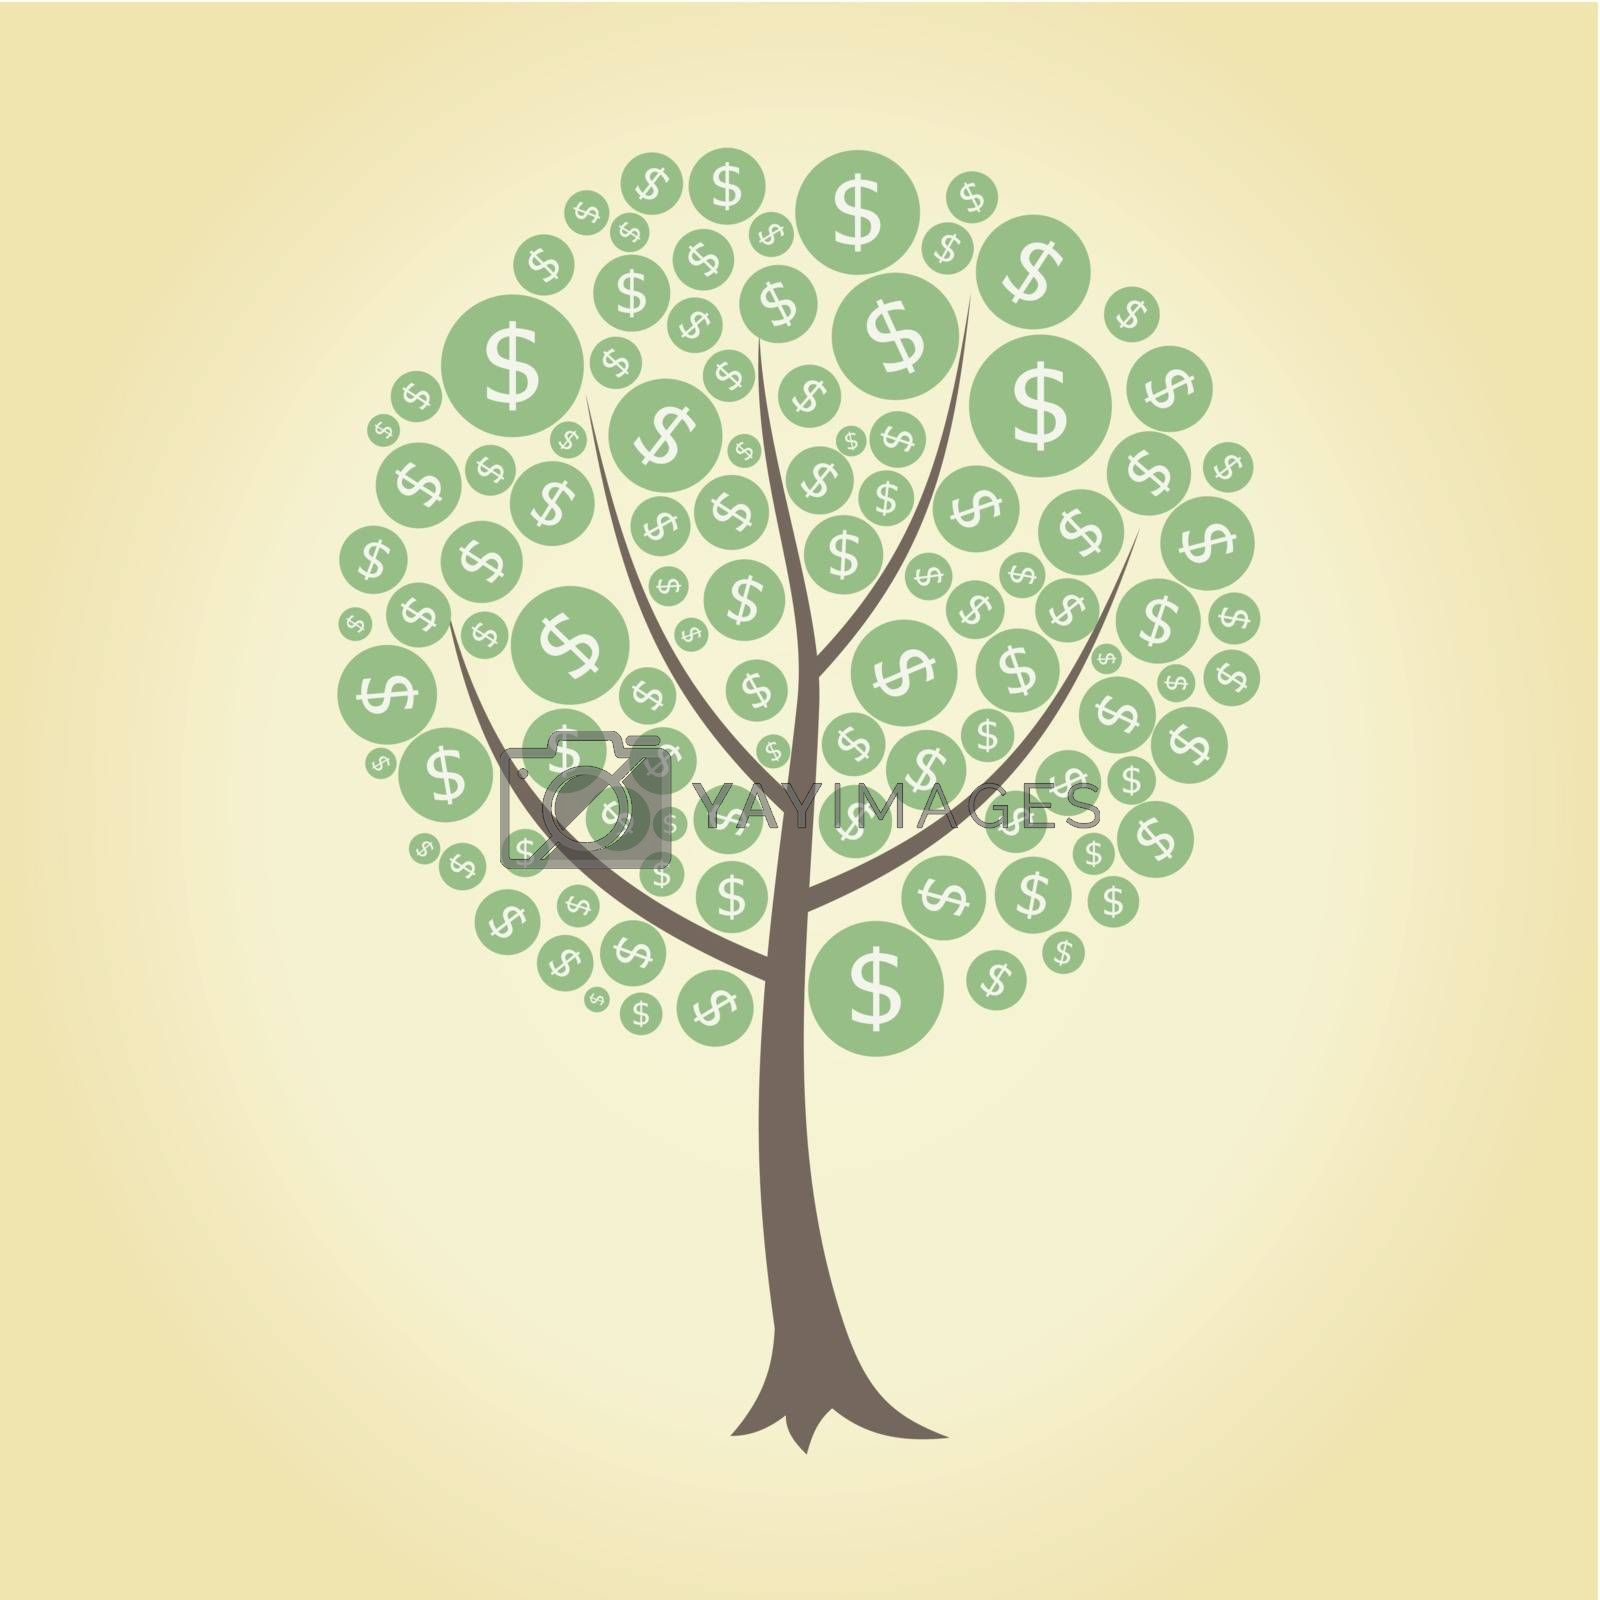 money tree on a yellow background